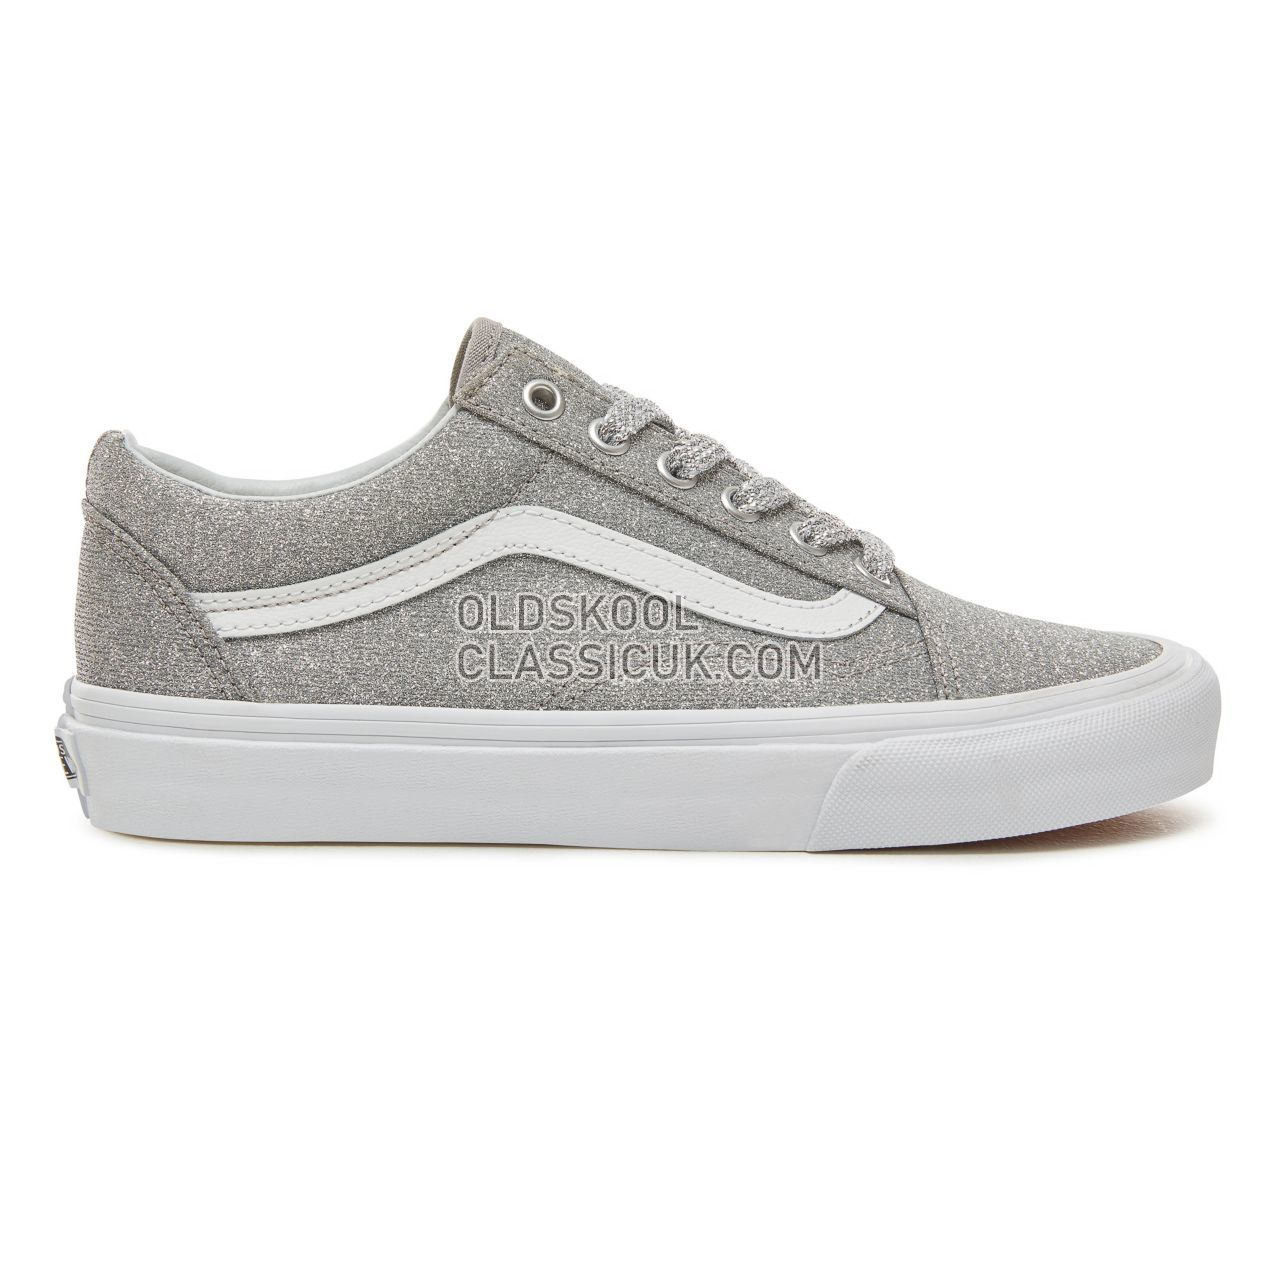 Vans Lurex Glitter Old Skool Sneakers Womens (Lurex Glitter) Silver/True White VA38G1UAW Shoes